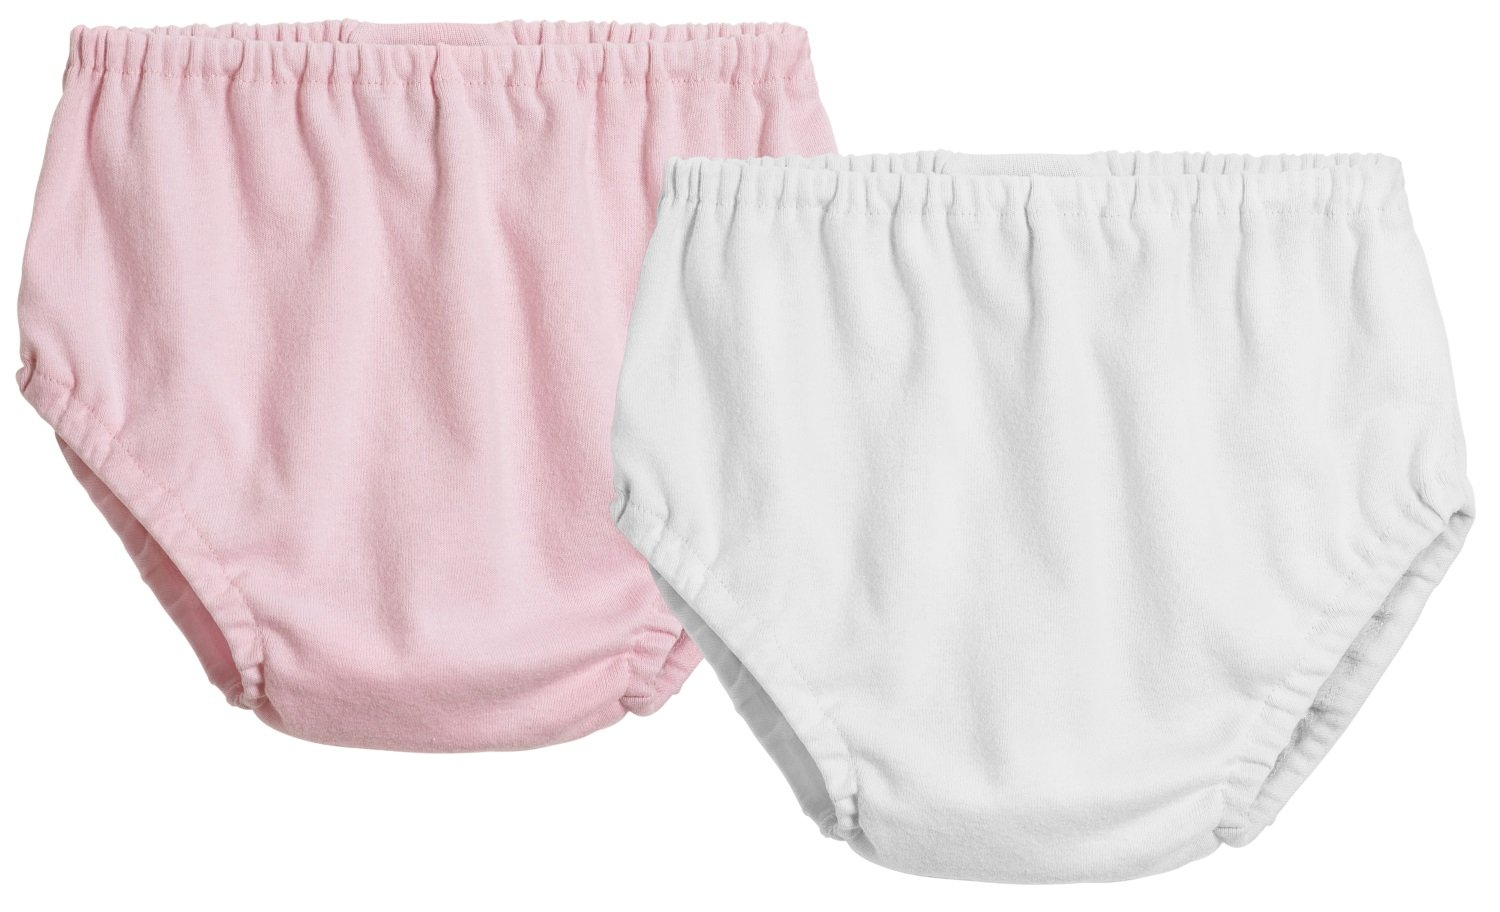 City Threads 2-Pack Little Girls' and Little Boys'' Unisex Diaper Covers Bloomers Soft Cotton, Pink/White, 3T